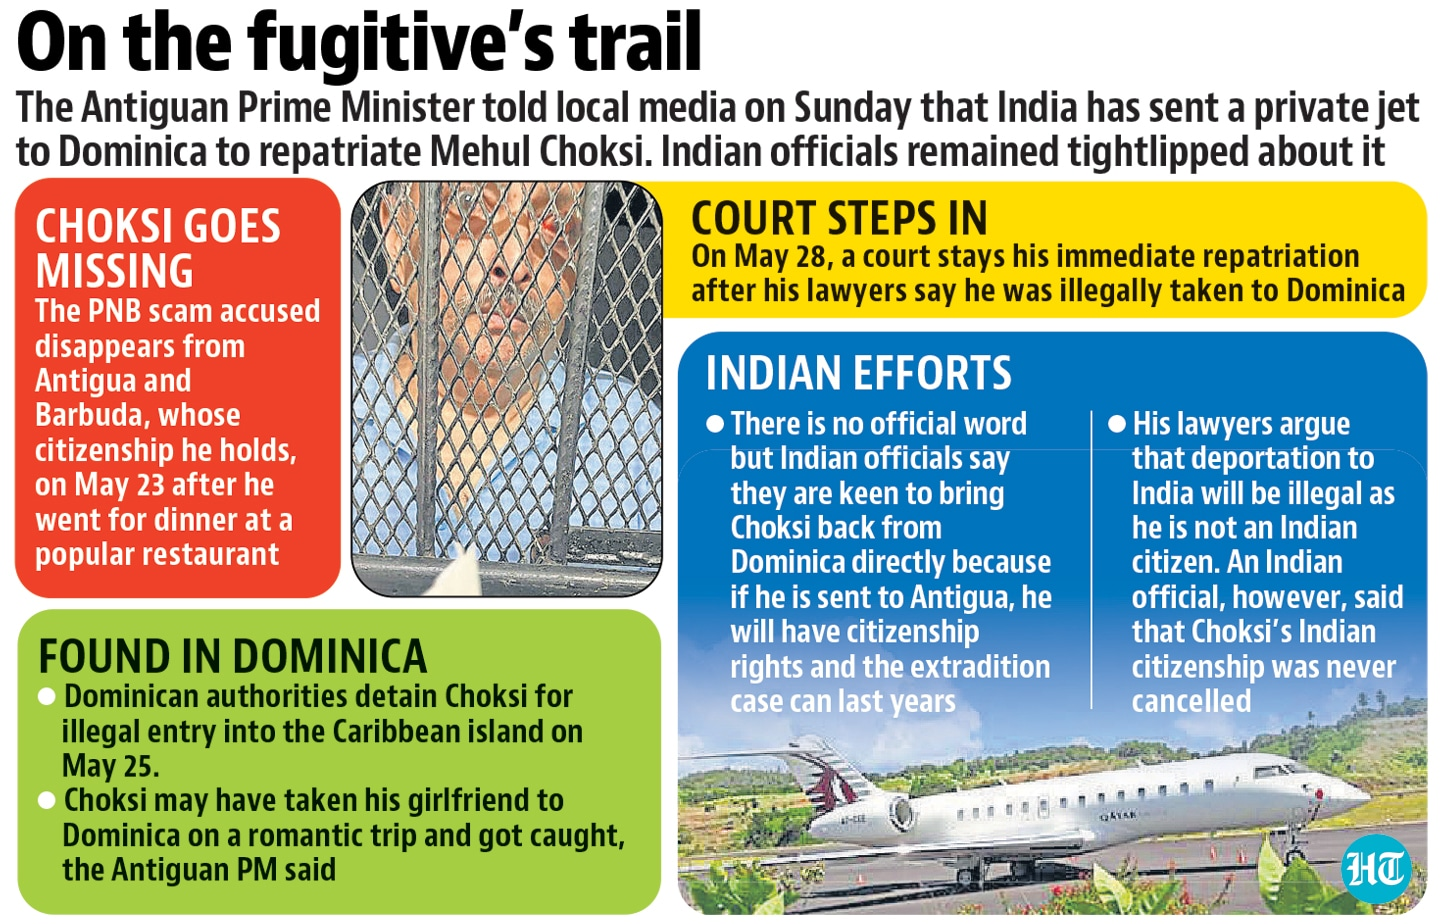 """While Indian officials did not speak about the private jet, they said this was their """"window of opportunity"""" to bring Choksi to India.(Hindustan Times)"""